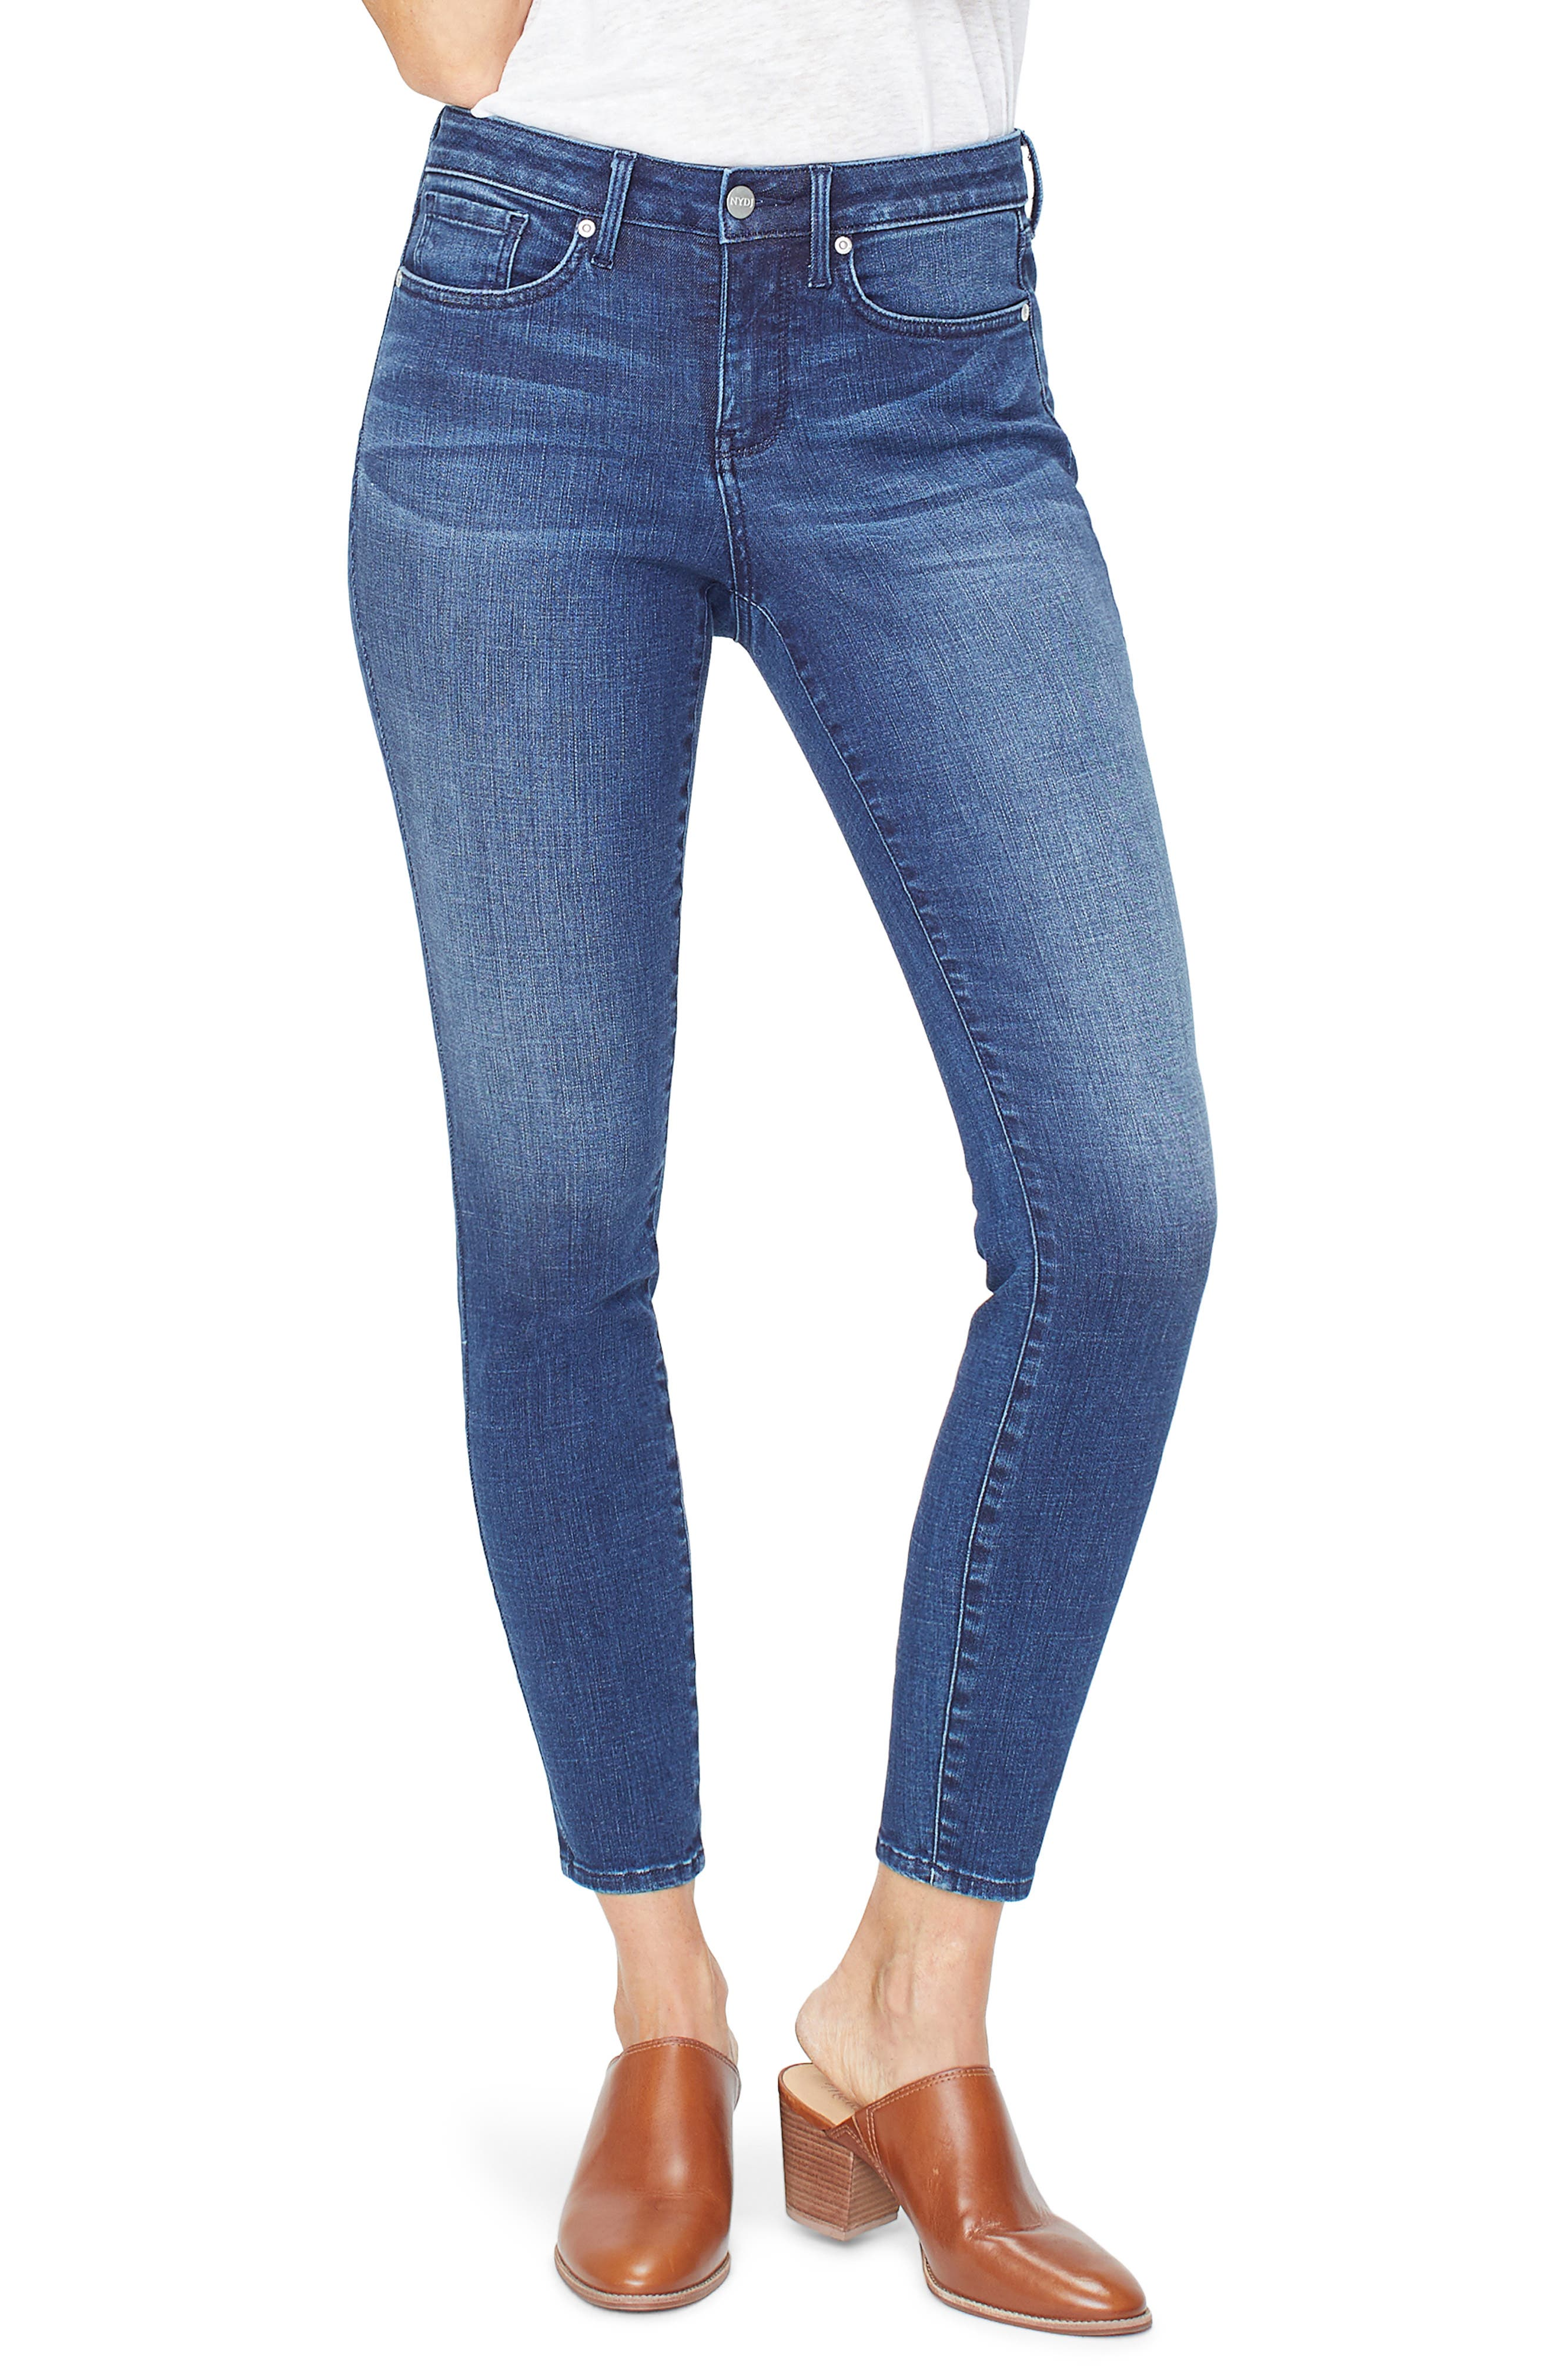 NYDJ, Ami Ankle Skinny Jeans, Main thumbnail 1, color, REGO